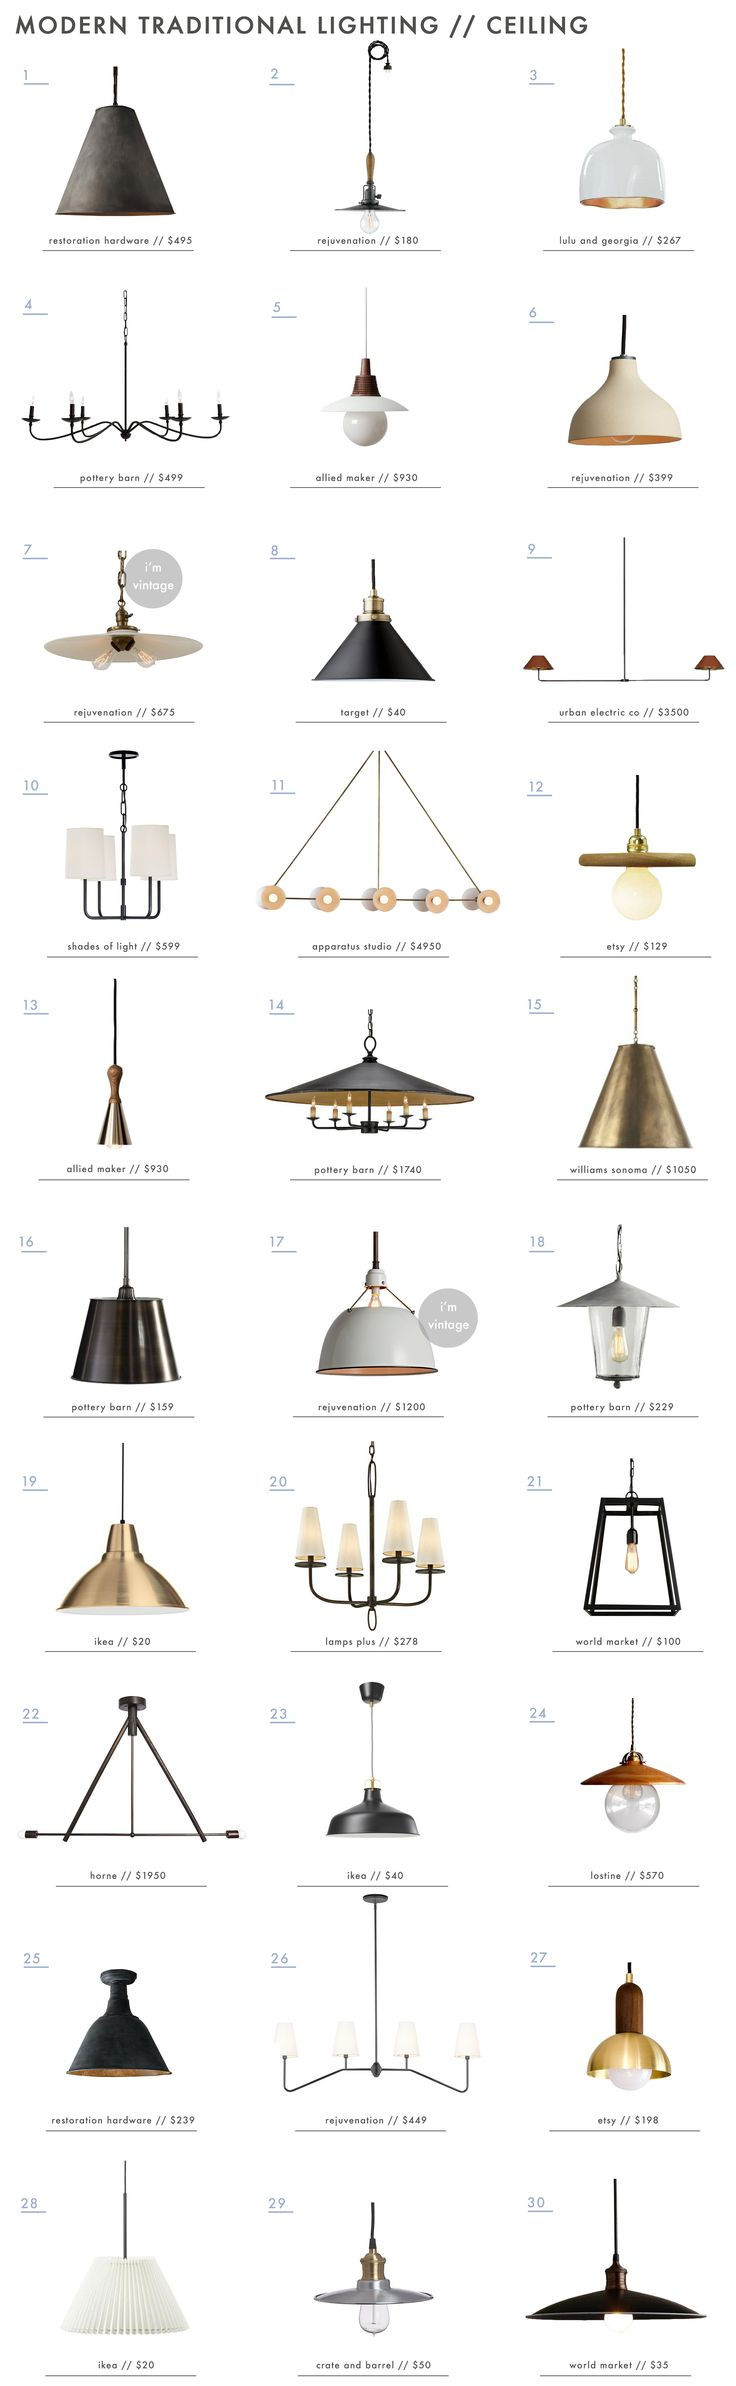 773 best Lighting to Light Up My Life images on Pinterest ...